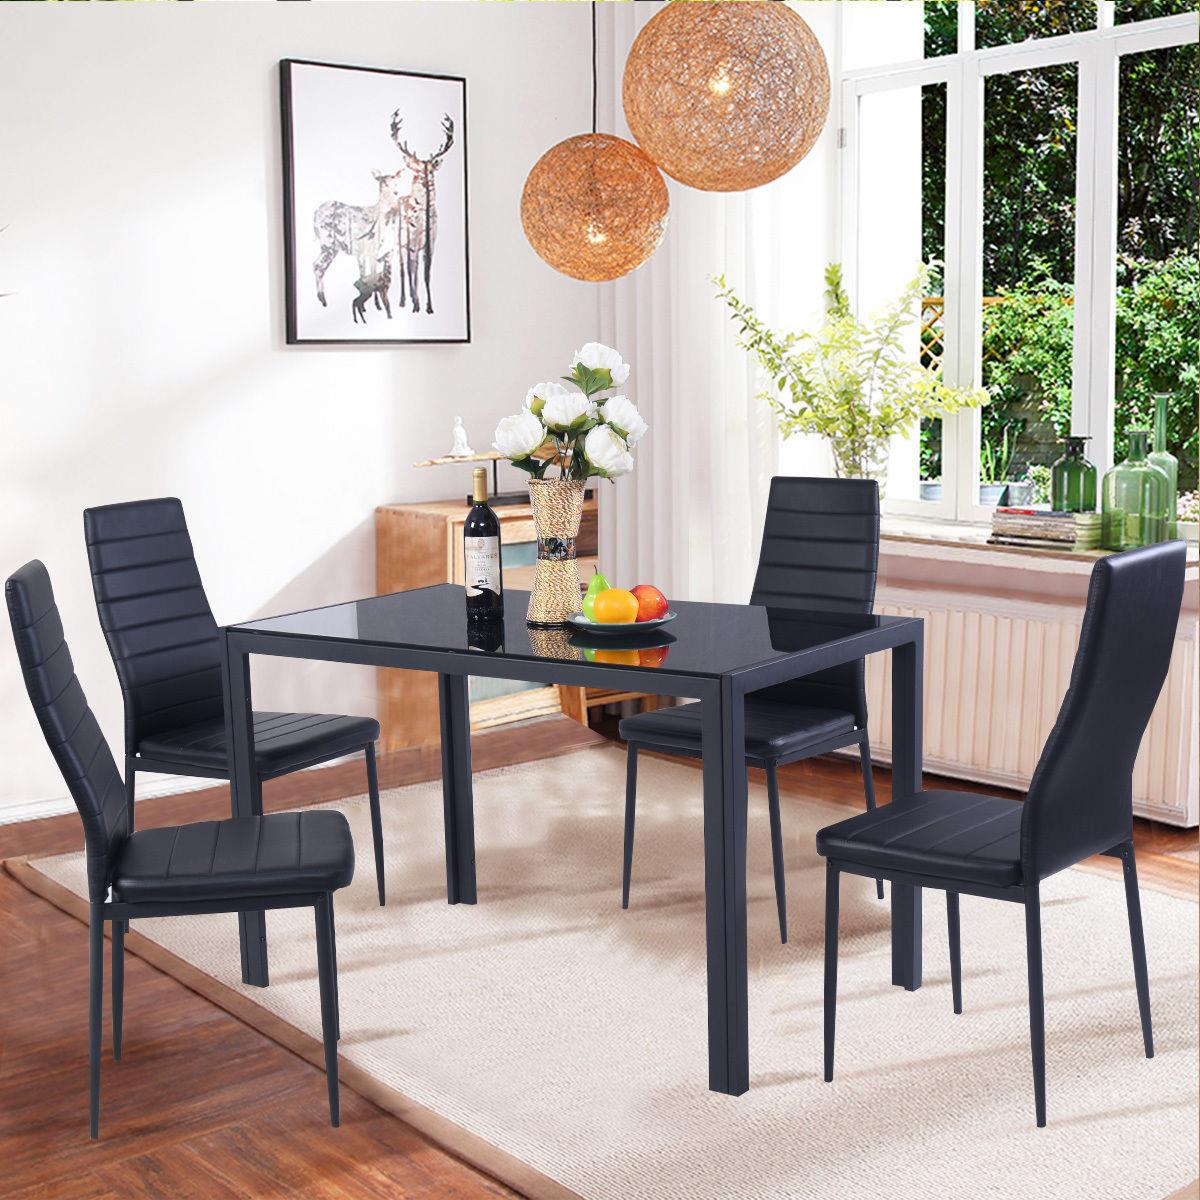 Set Of 5 Pcs Dining Table 4 Chairs Metal Glass Kitchen Room Breakfast New 603047900243 Ebay